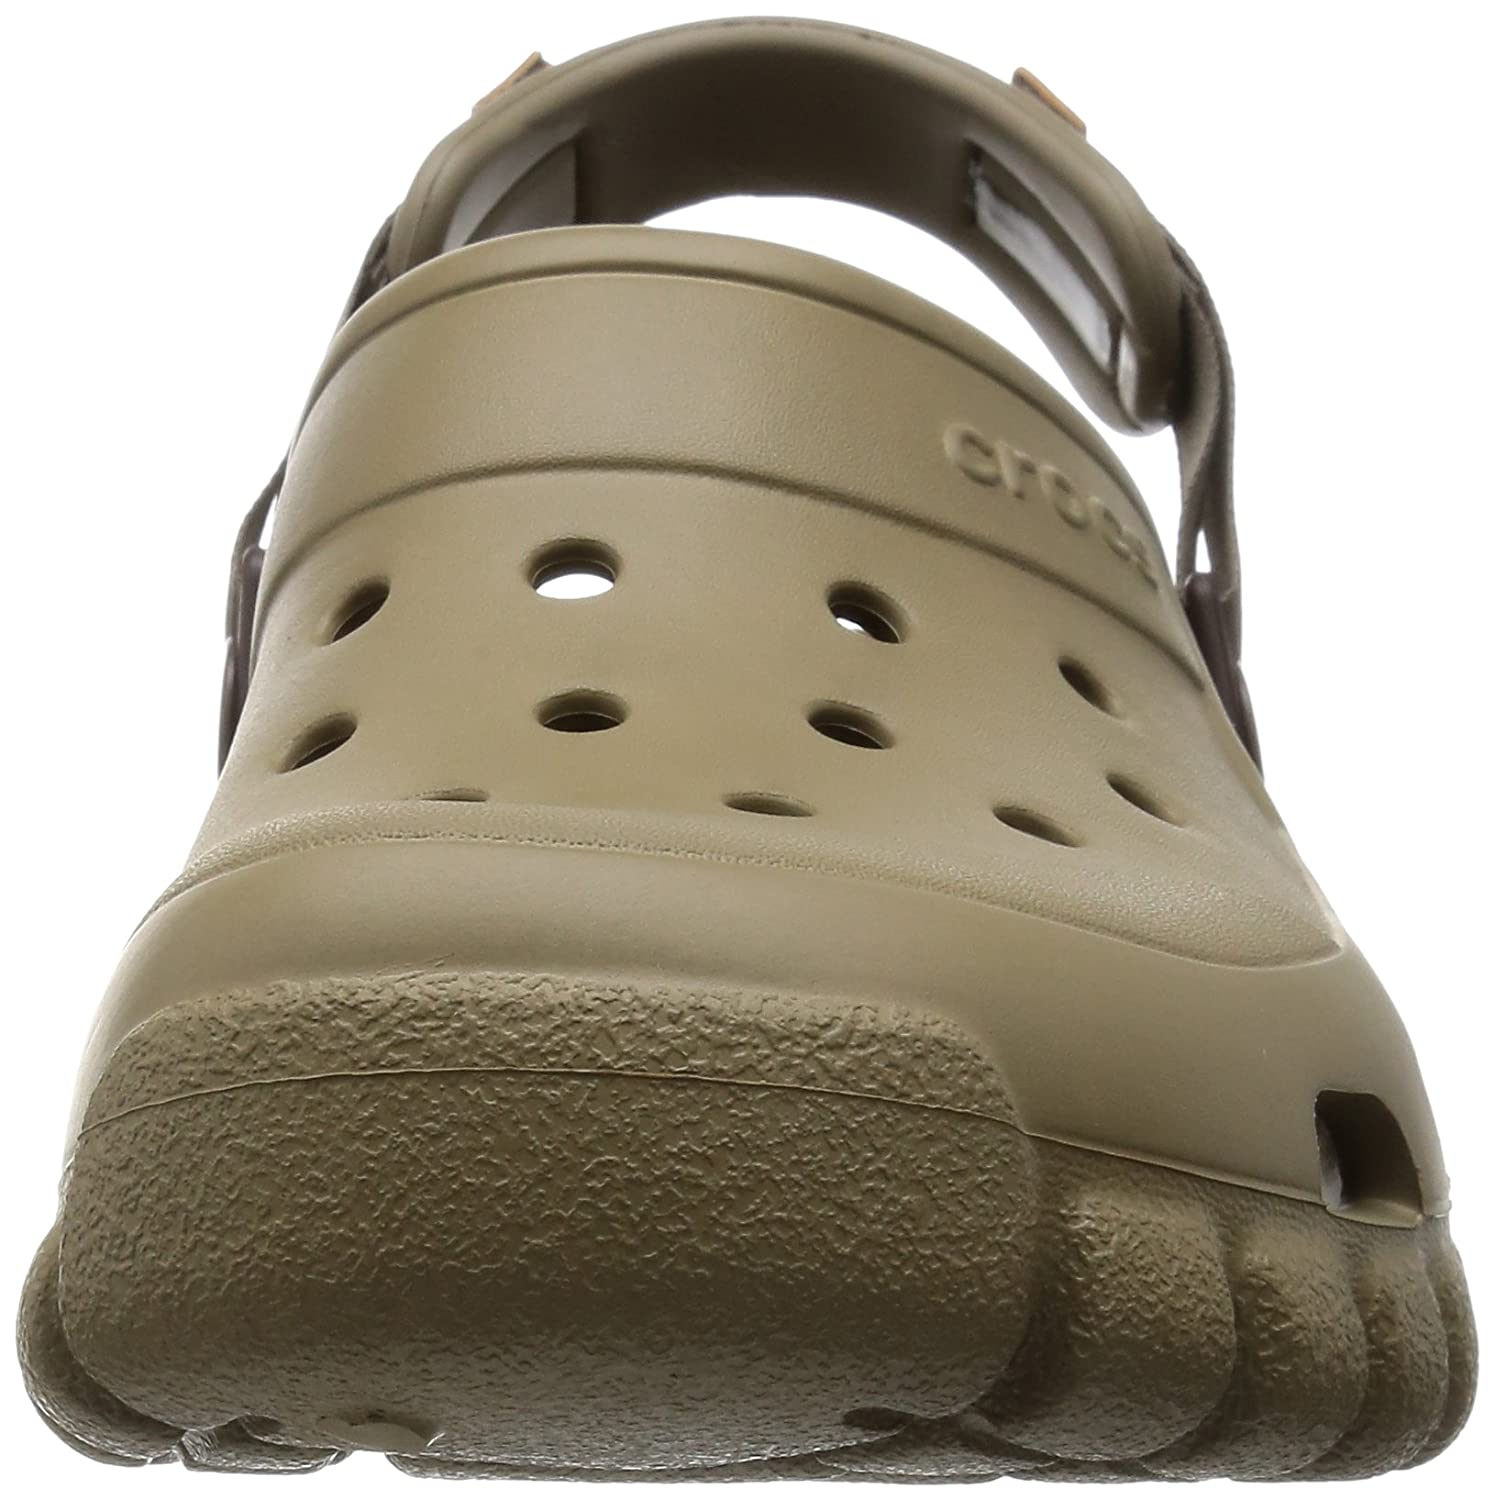 b5cf54608ed Crocs Offroad Sport Clog Unisex Slip on [Shoes]_202651-24S-M9W11: Buy  Online at Low Prices in India - Amazon.in